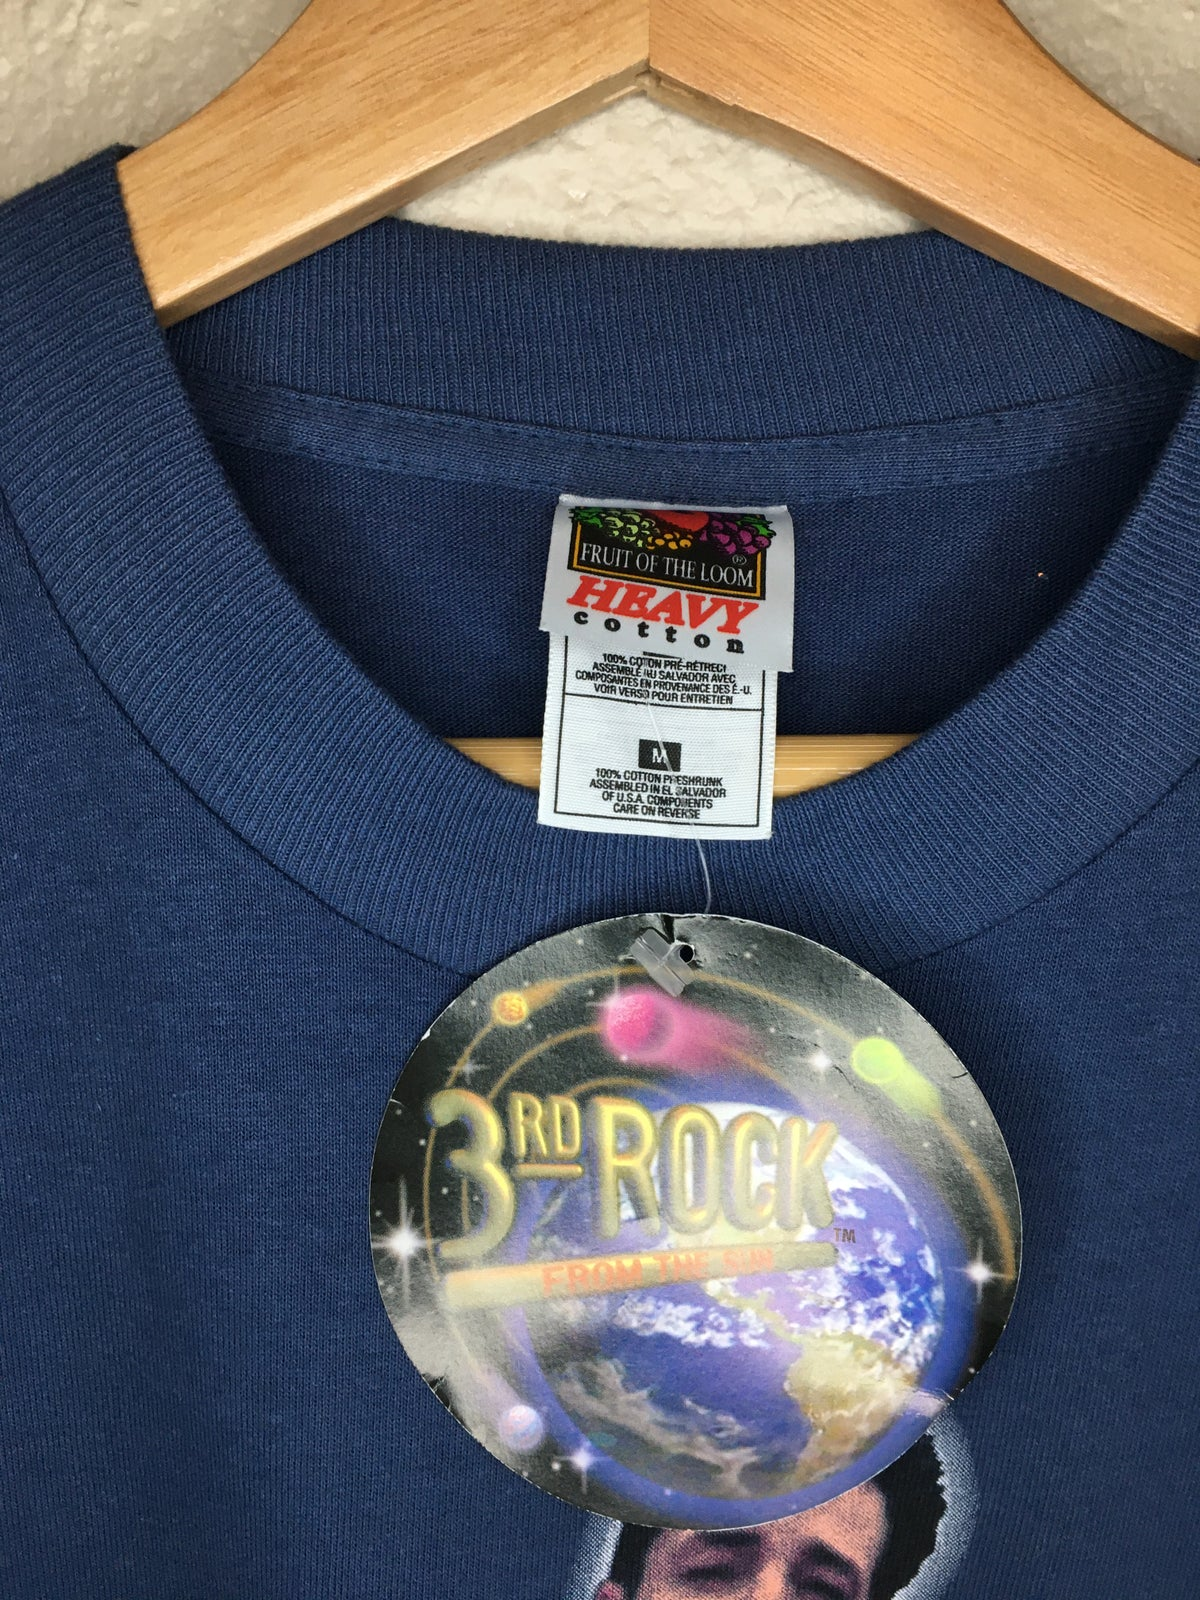 1997 3rd Rock From The Sun Tee